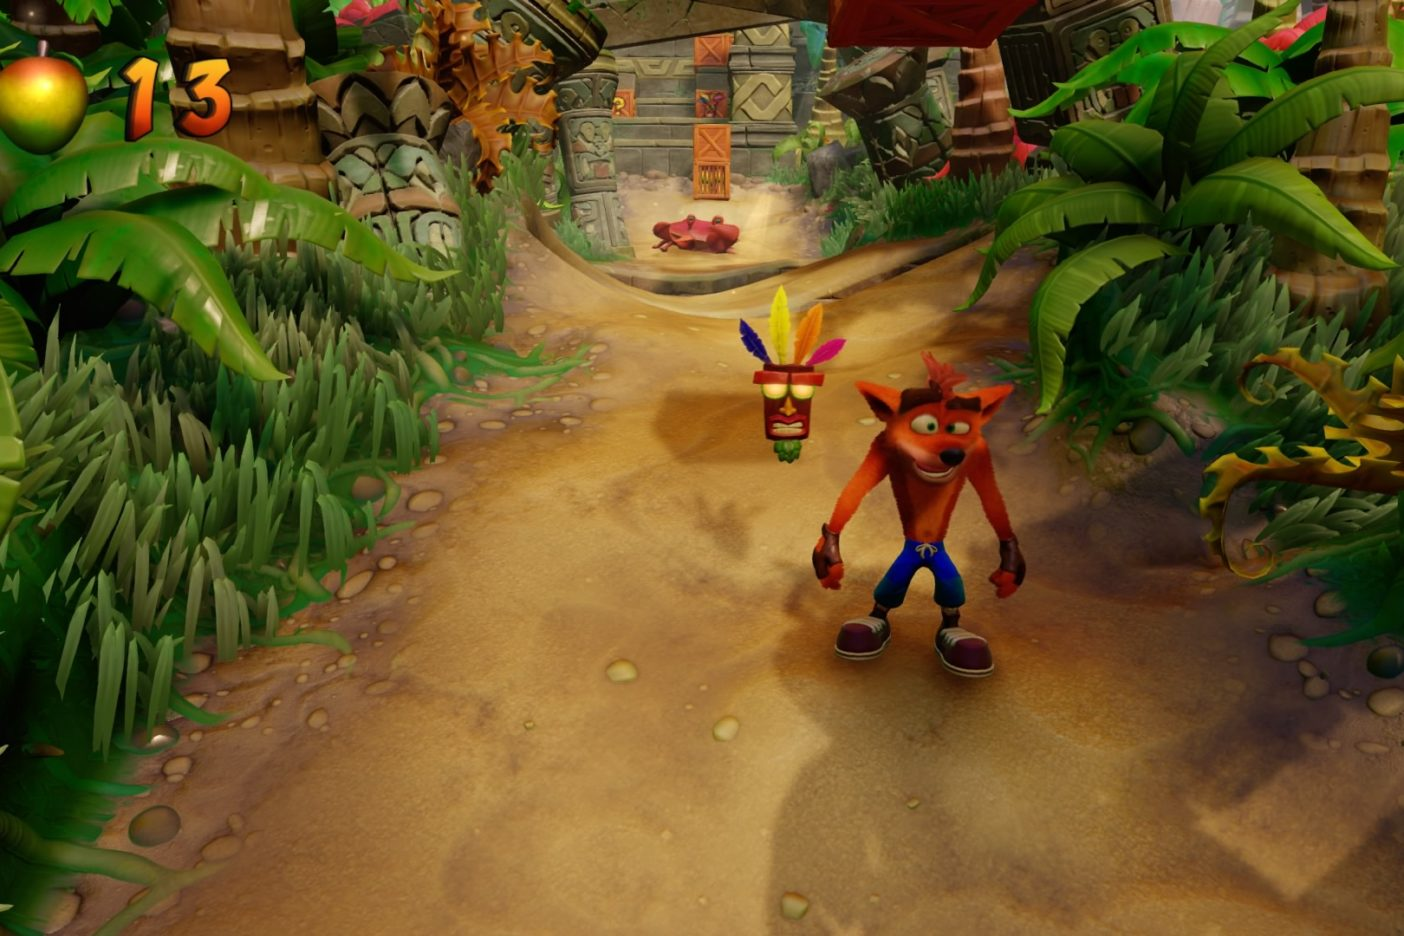 Crash Bandicoot gameplay